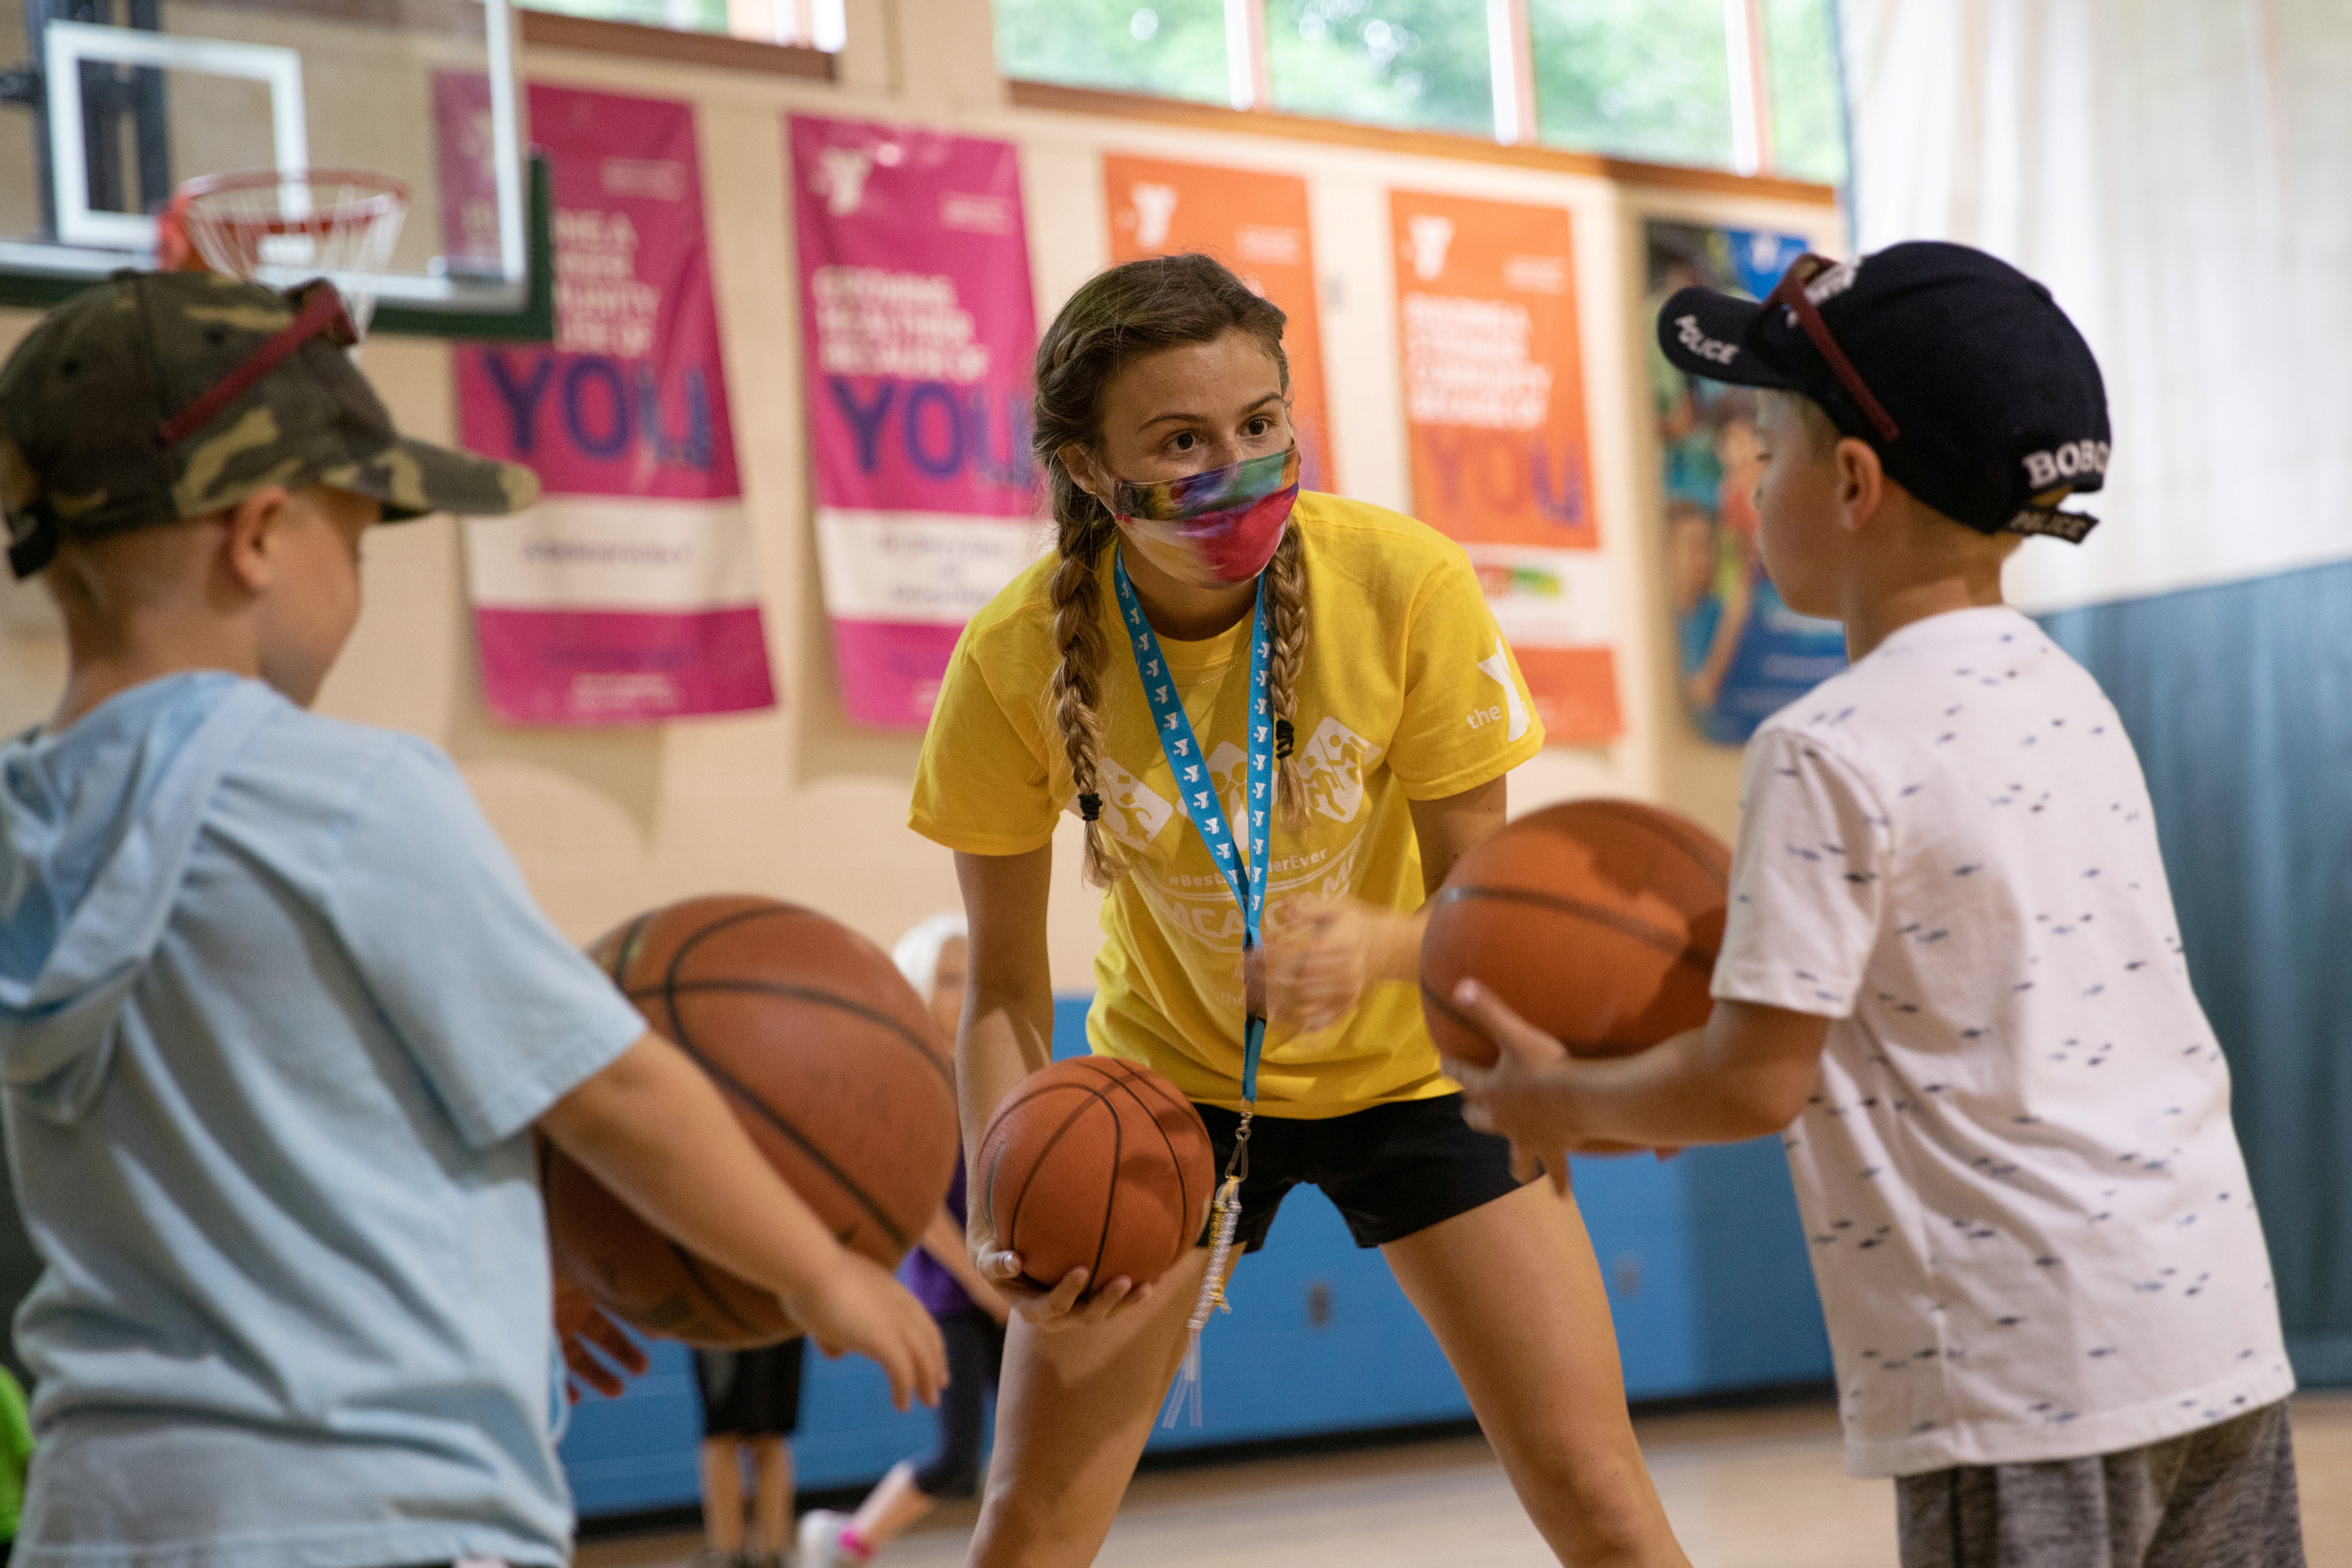 A counselor wearing a protective face mask plays with children as summer camps reopen amid the spread of coronavirus disease (COVID-19) at Carls Family YMCA summer camp in Milford, Michigan, U.S., June 23, 2020.  REUTERS/Emily Elconin/File Photo